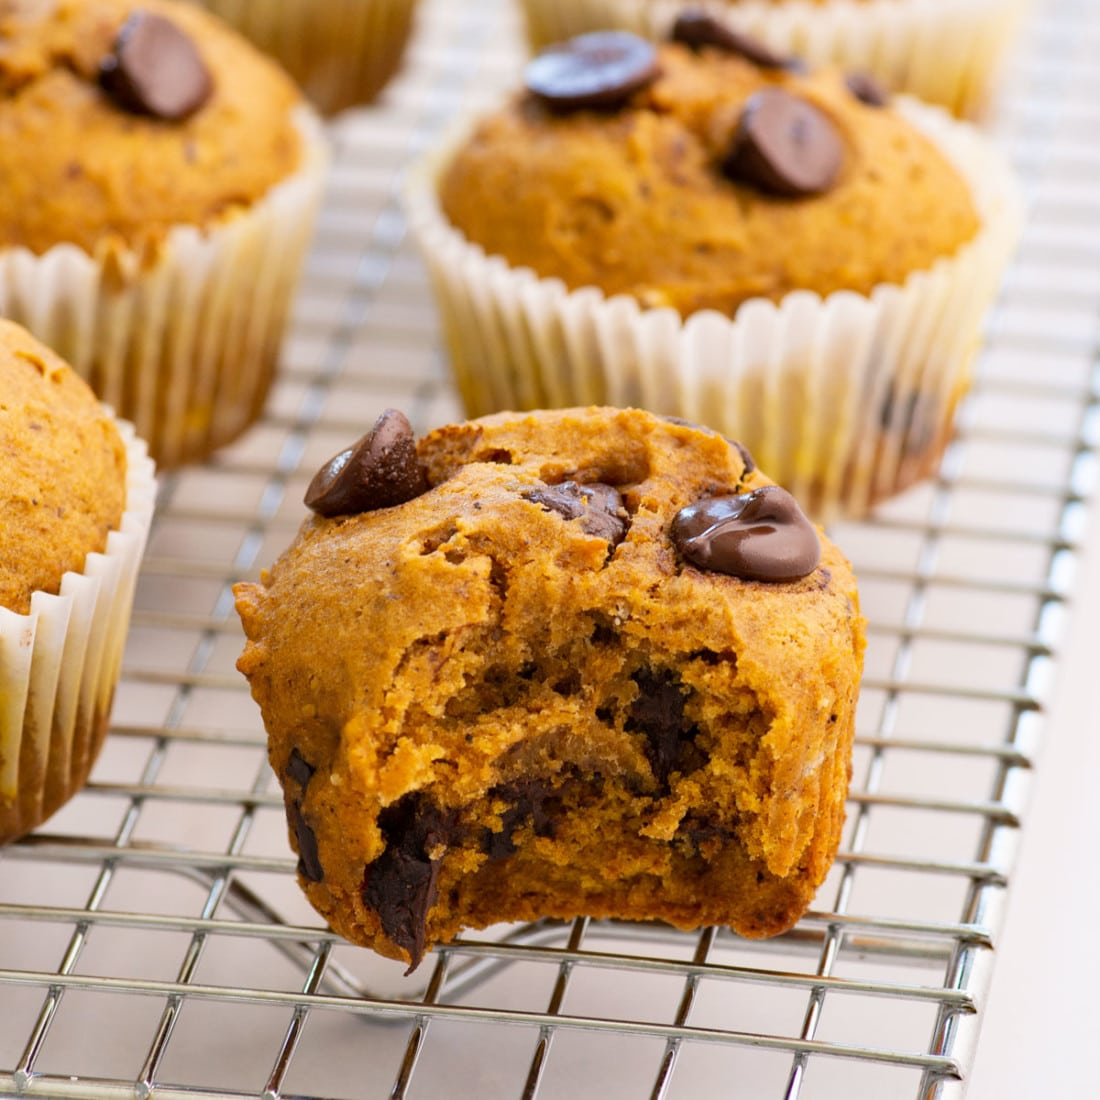 vegan pumpkin muffins on a wire rack with a bite taken from the side